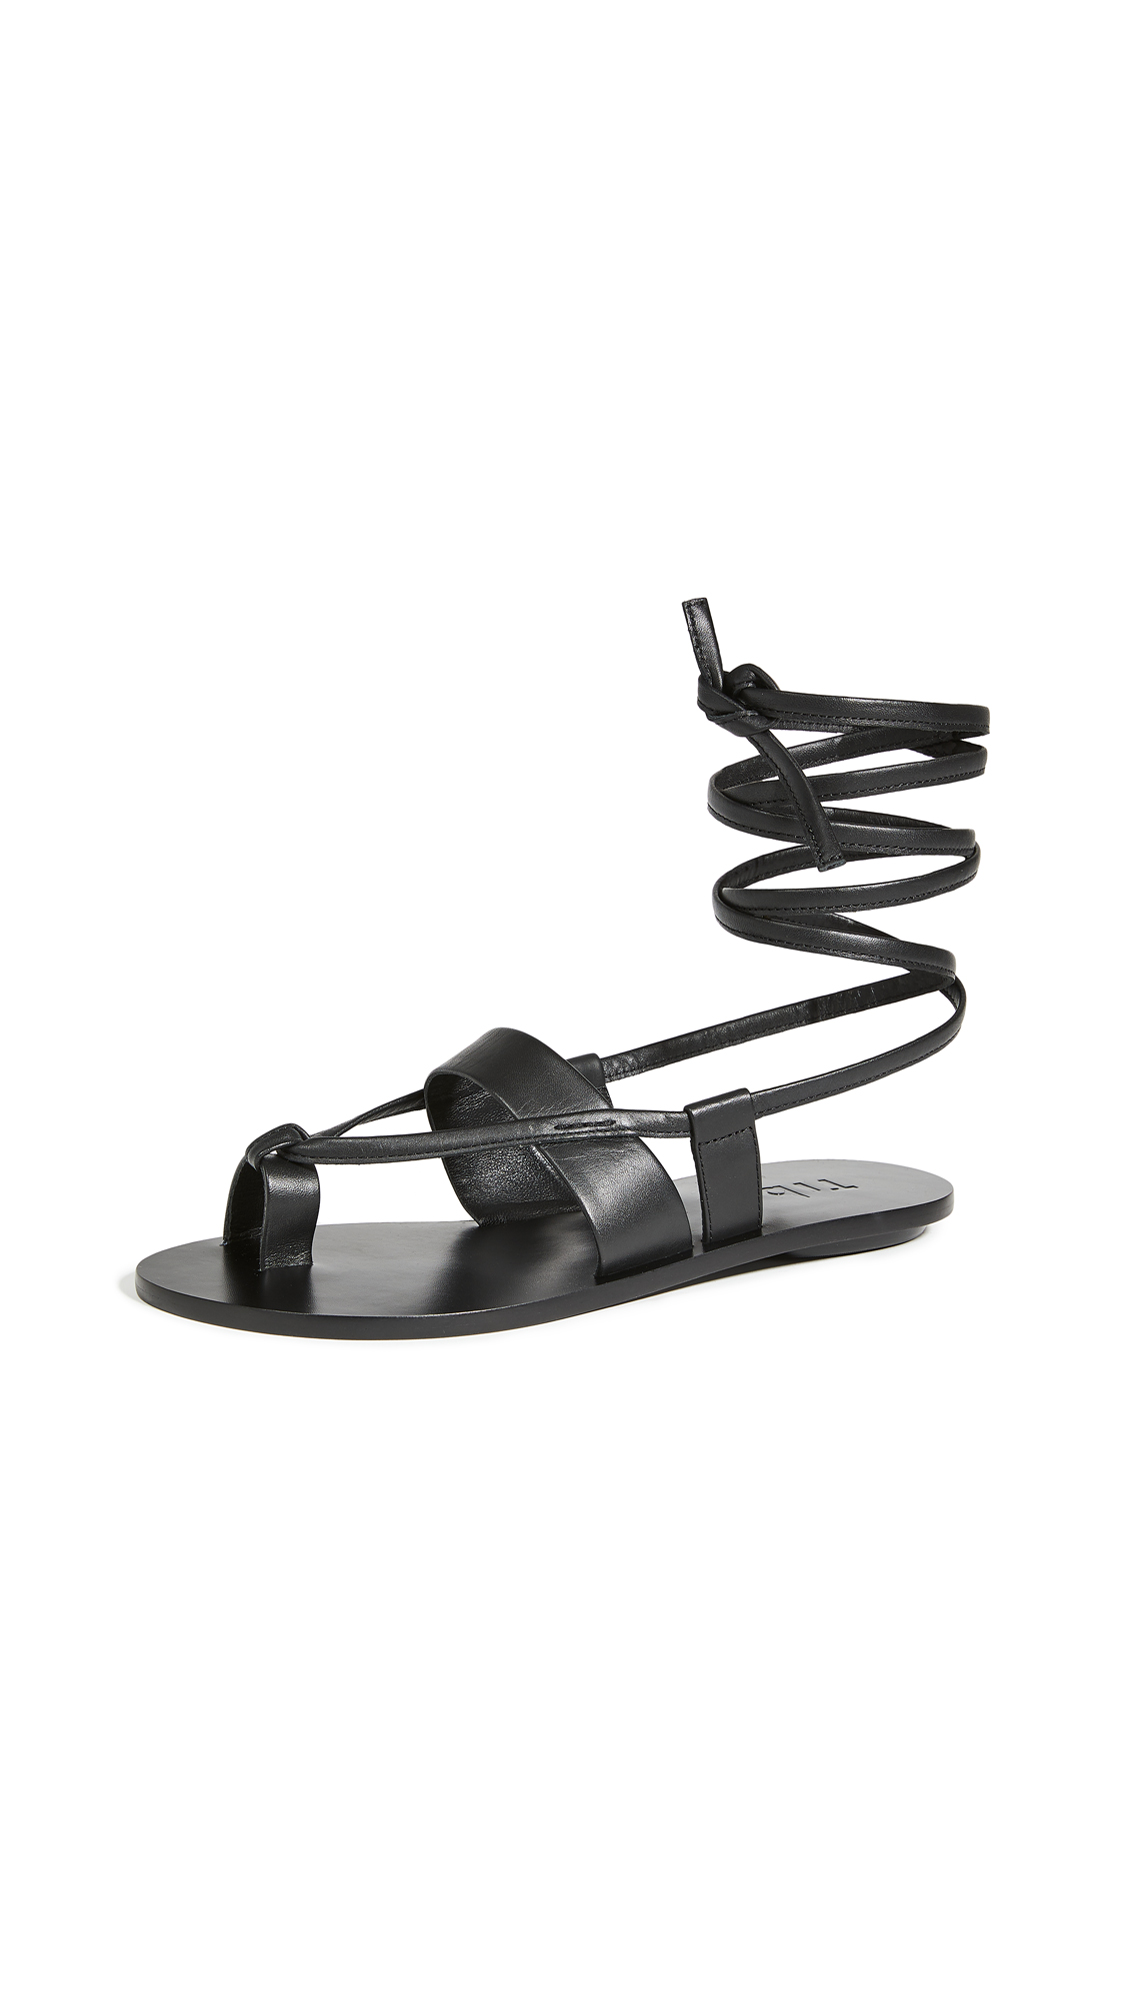 Tibi Reid Sandals - 30% Off Sale